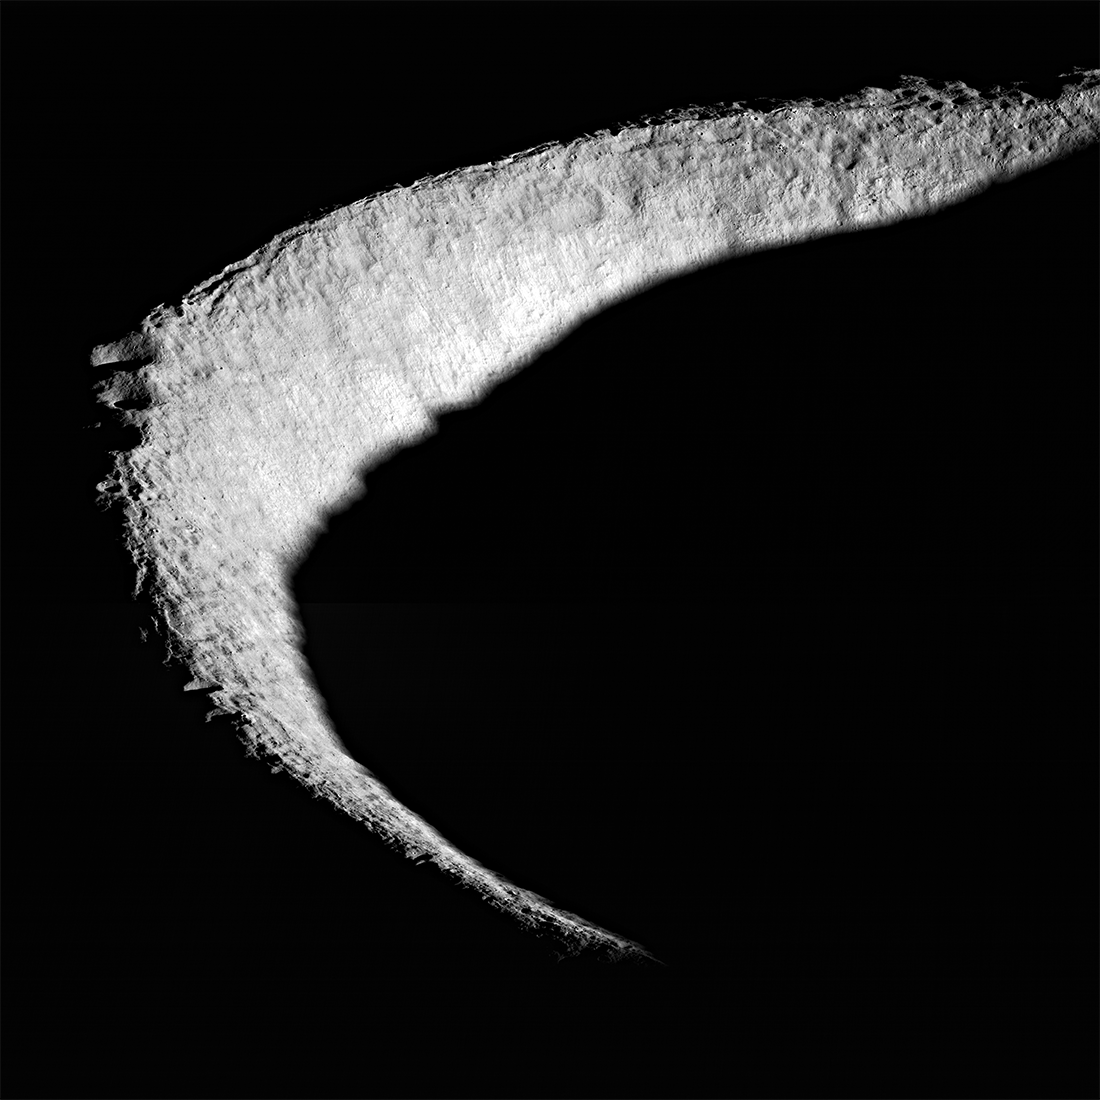 Lunar Reconnaissance Orbiter view of Shackleton crater at lunar south pole